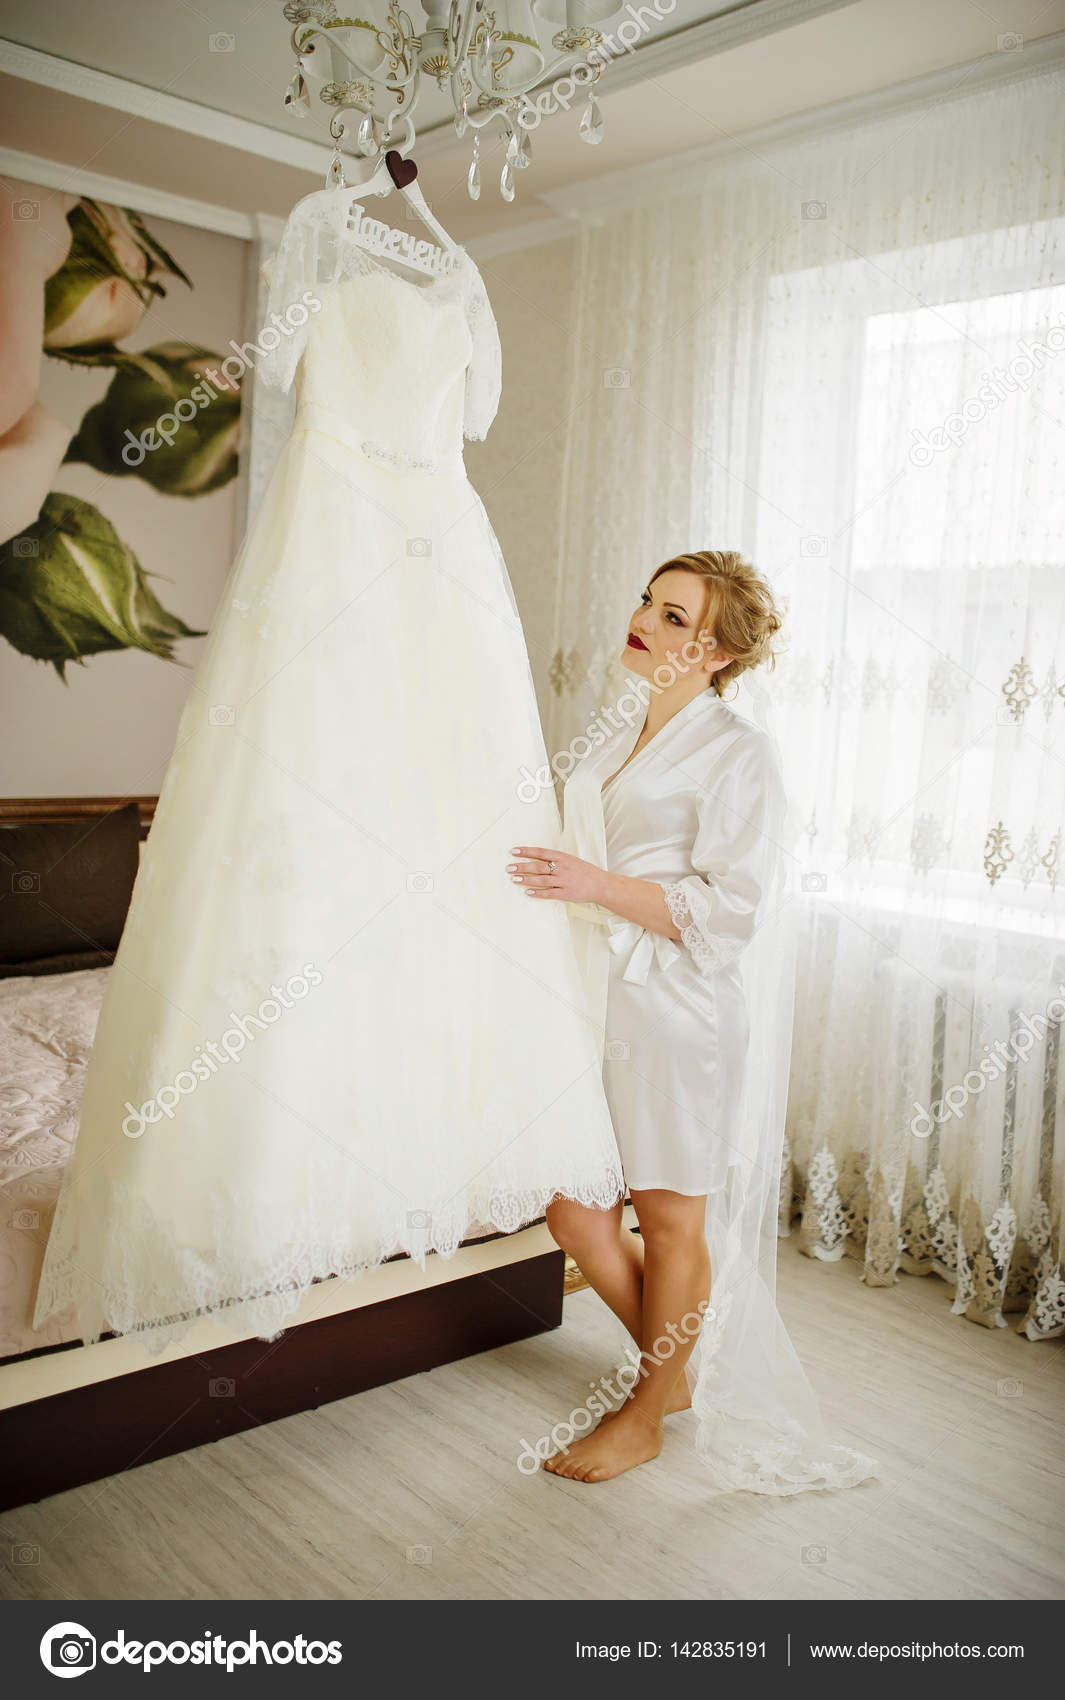 Blonde Bride In A Bathrobe Looking At Wedding Dress At Her Room Stock Photo C Asphoto777 142835191